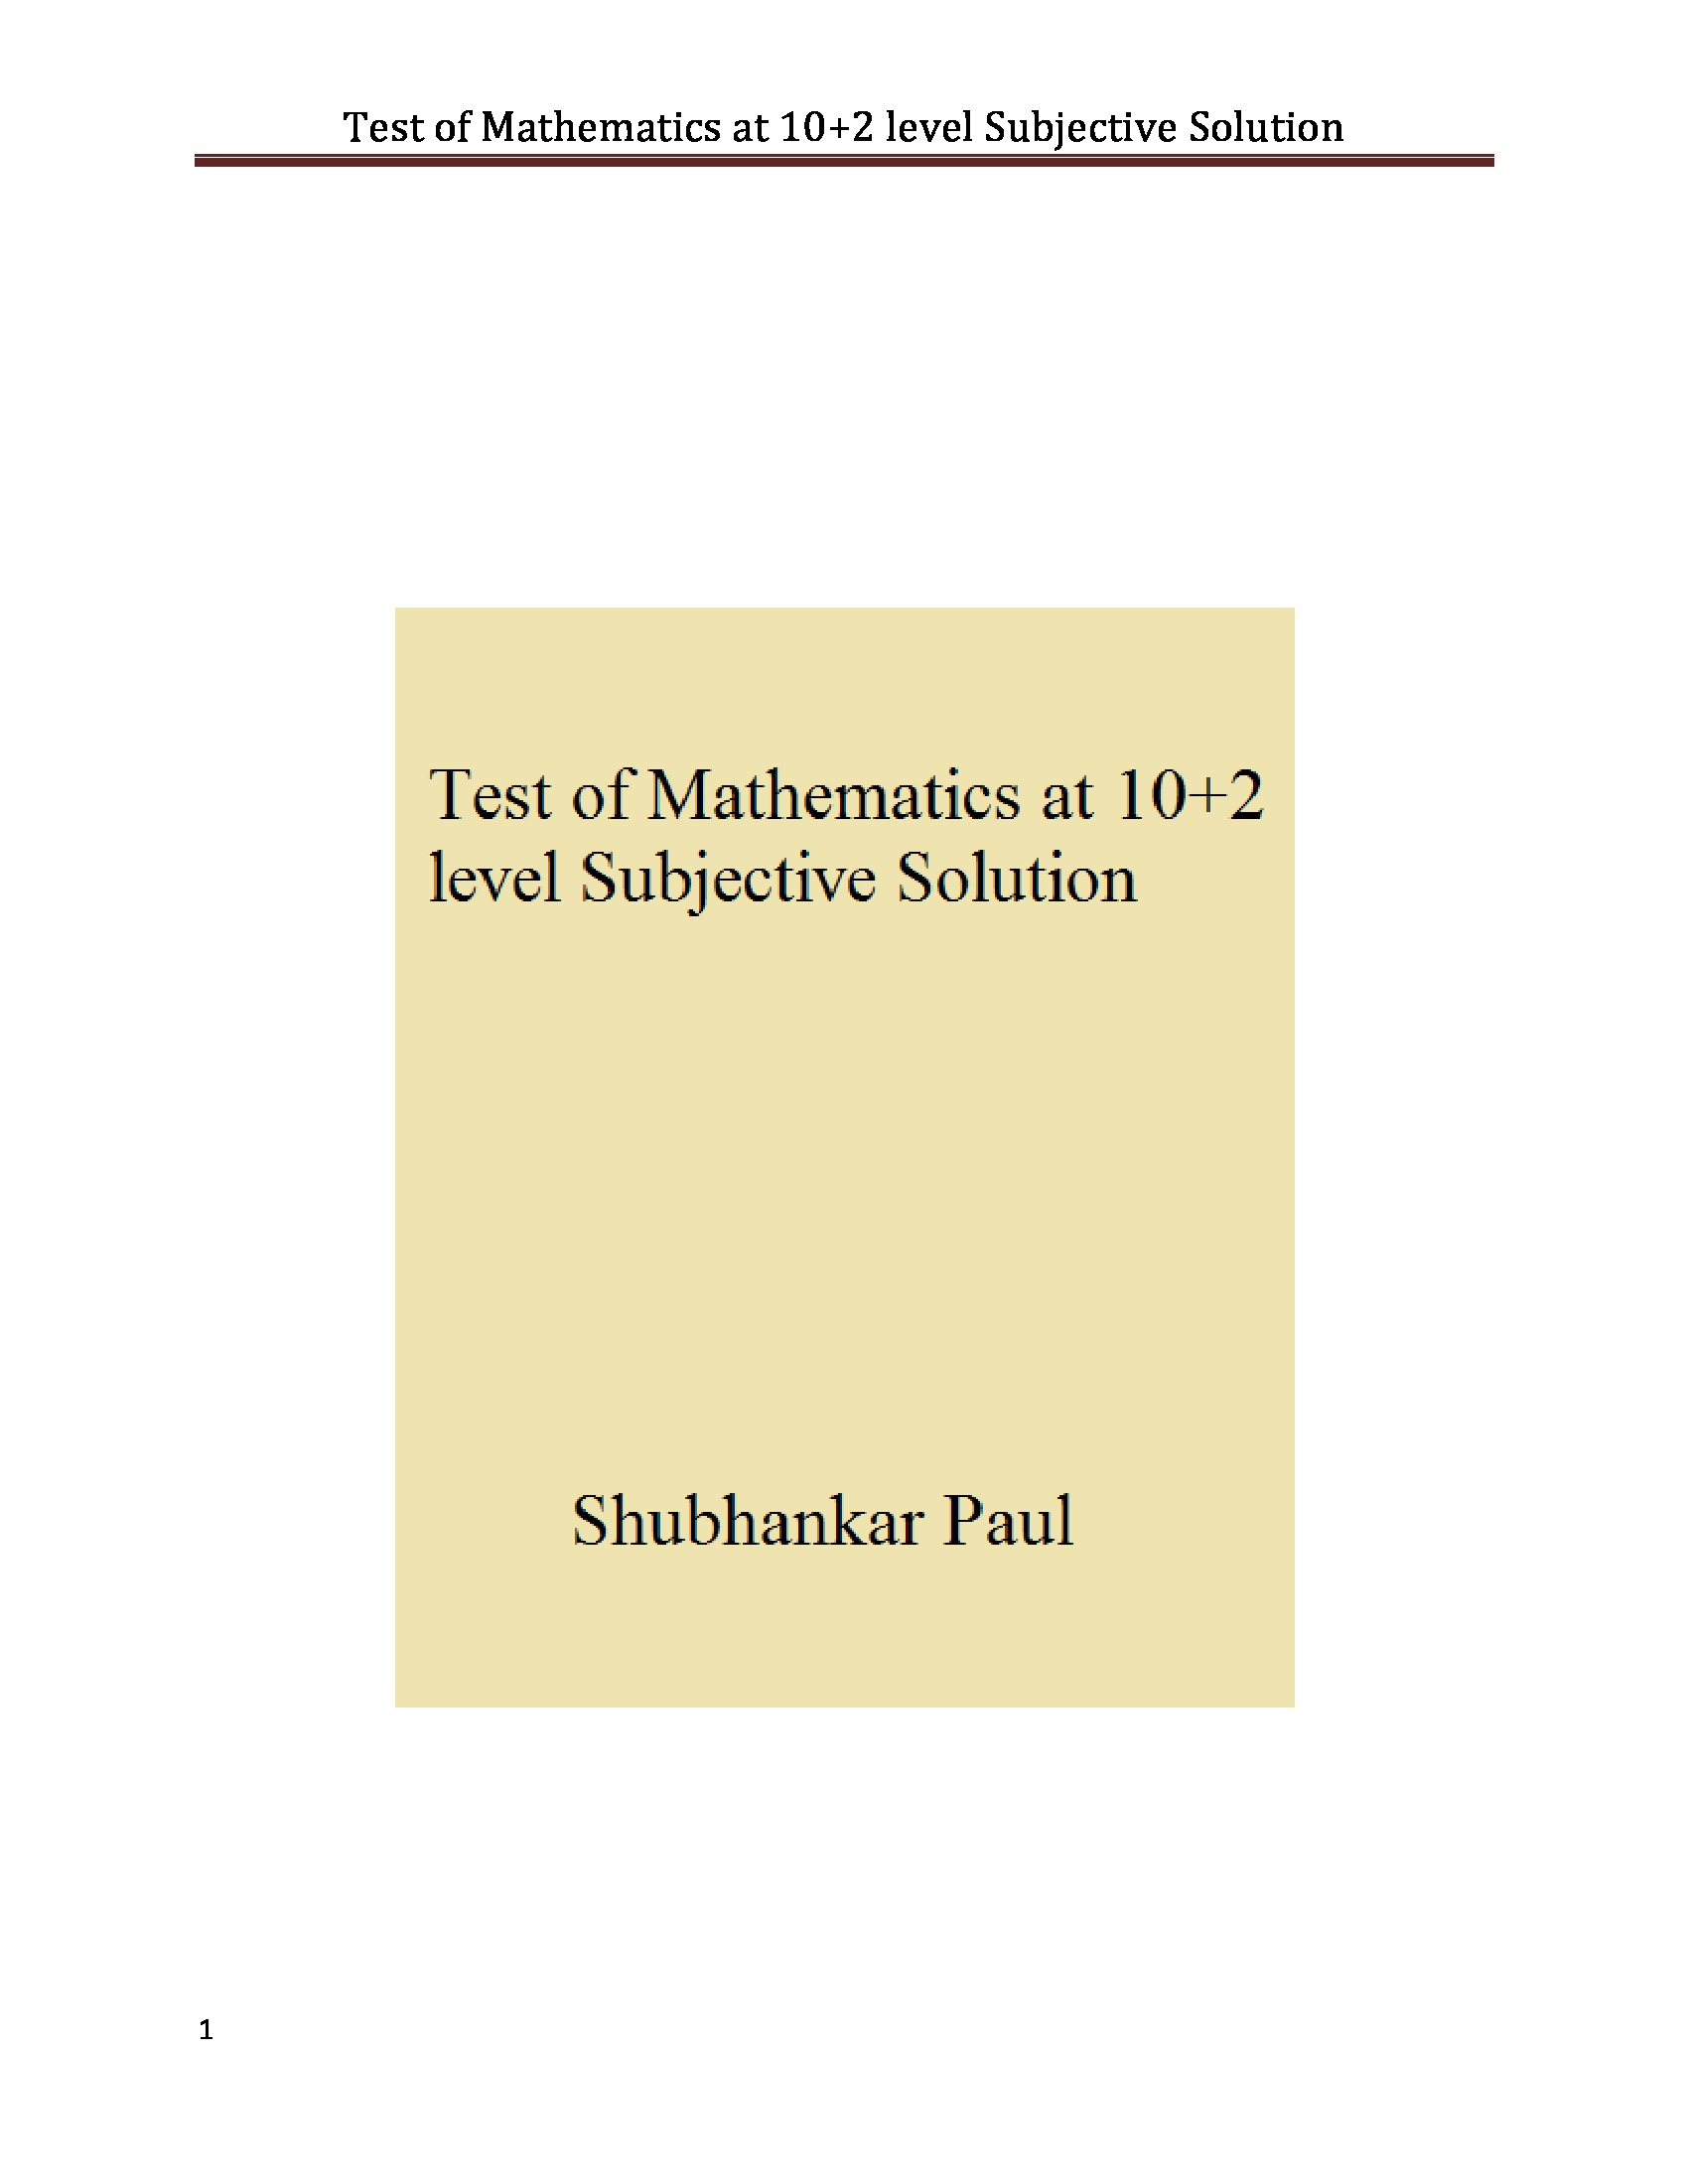 Test of Mathematics at 10+2 level Subjective Solution (eBook